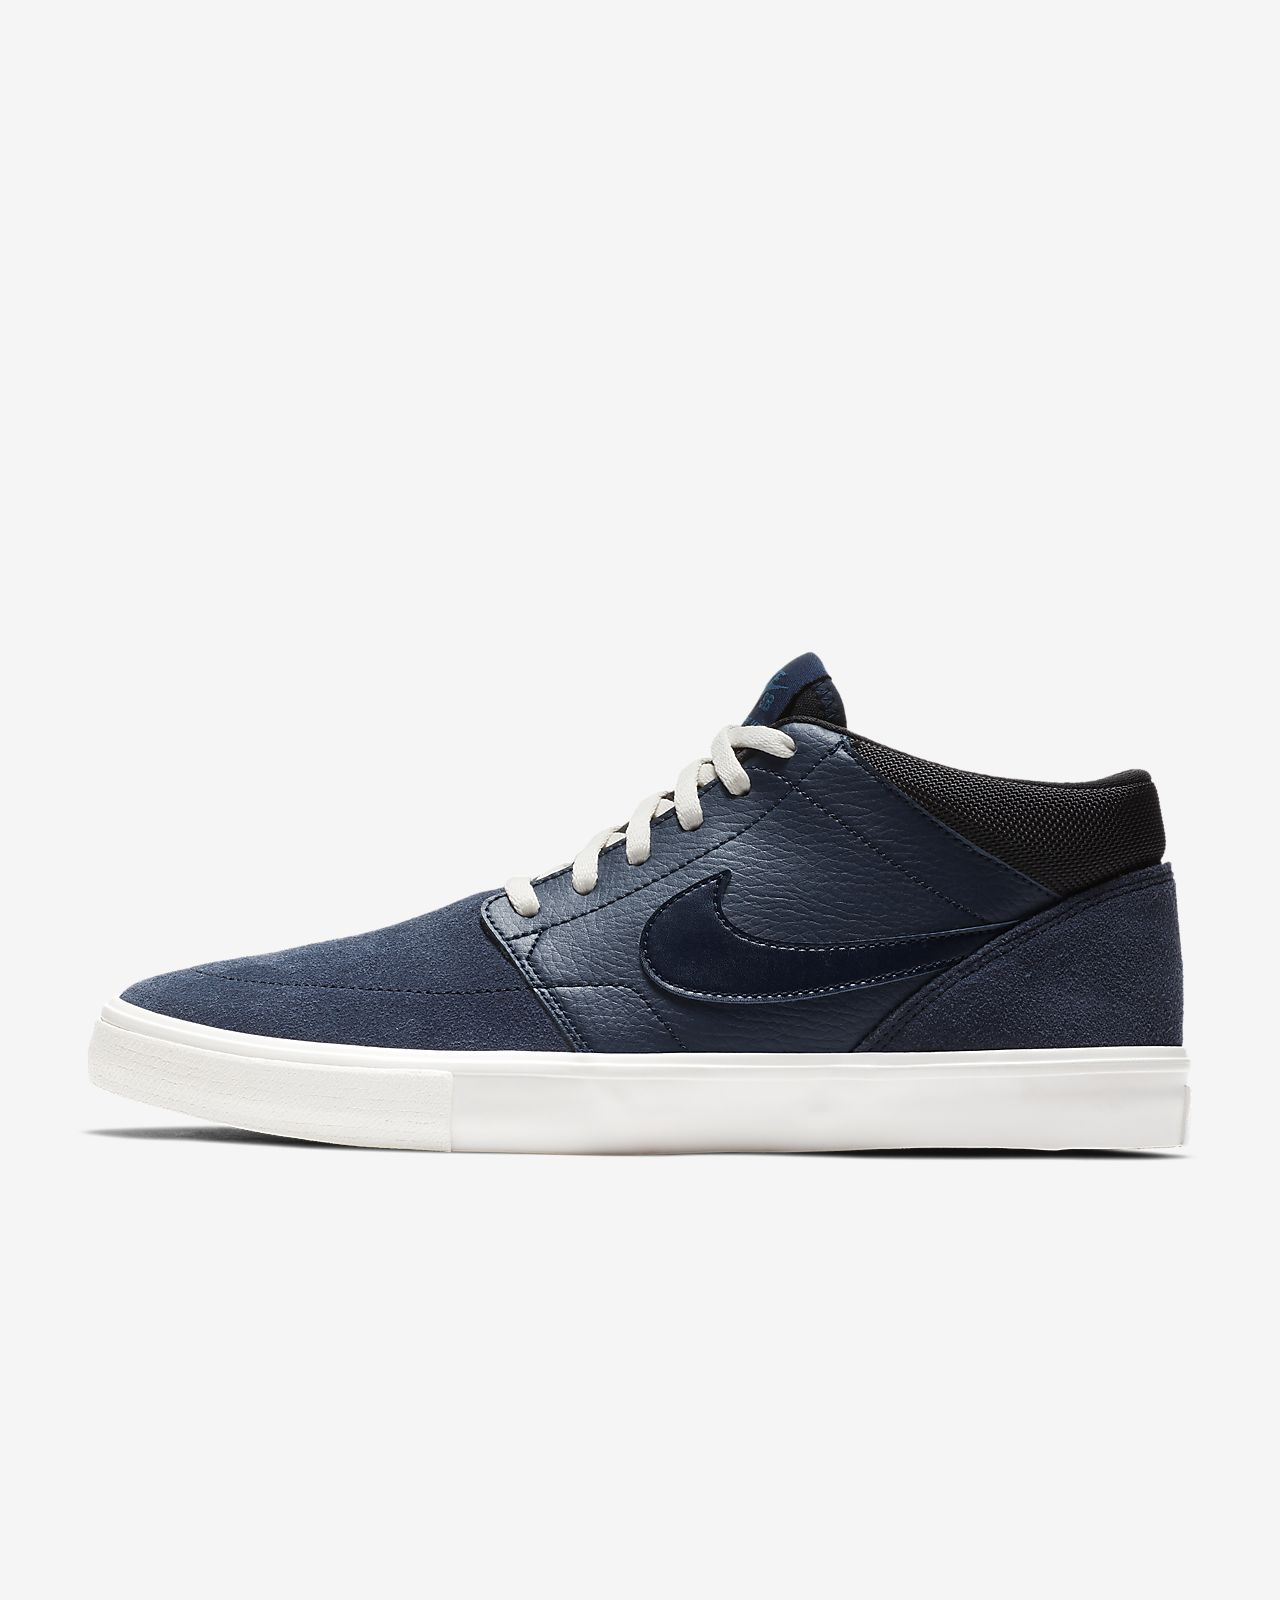 usa cheap sale outlet store sale classic Nike SB Solarsoft Portmore II Mid Men's Skateboarding Shoe